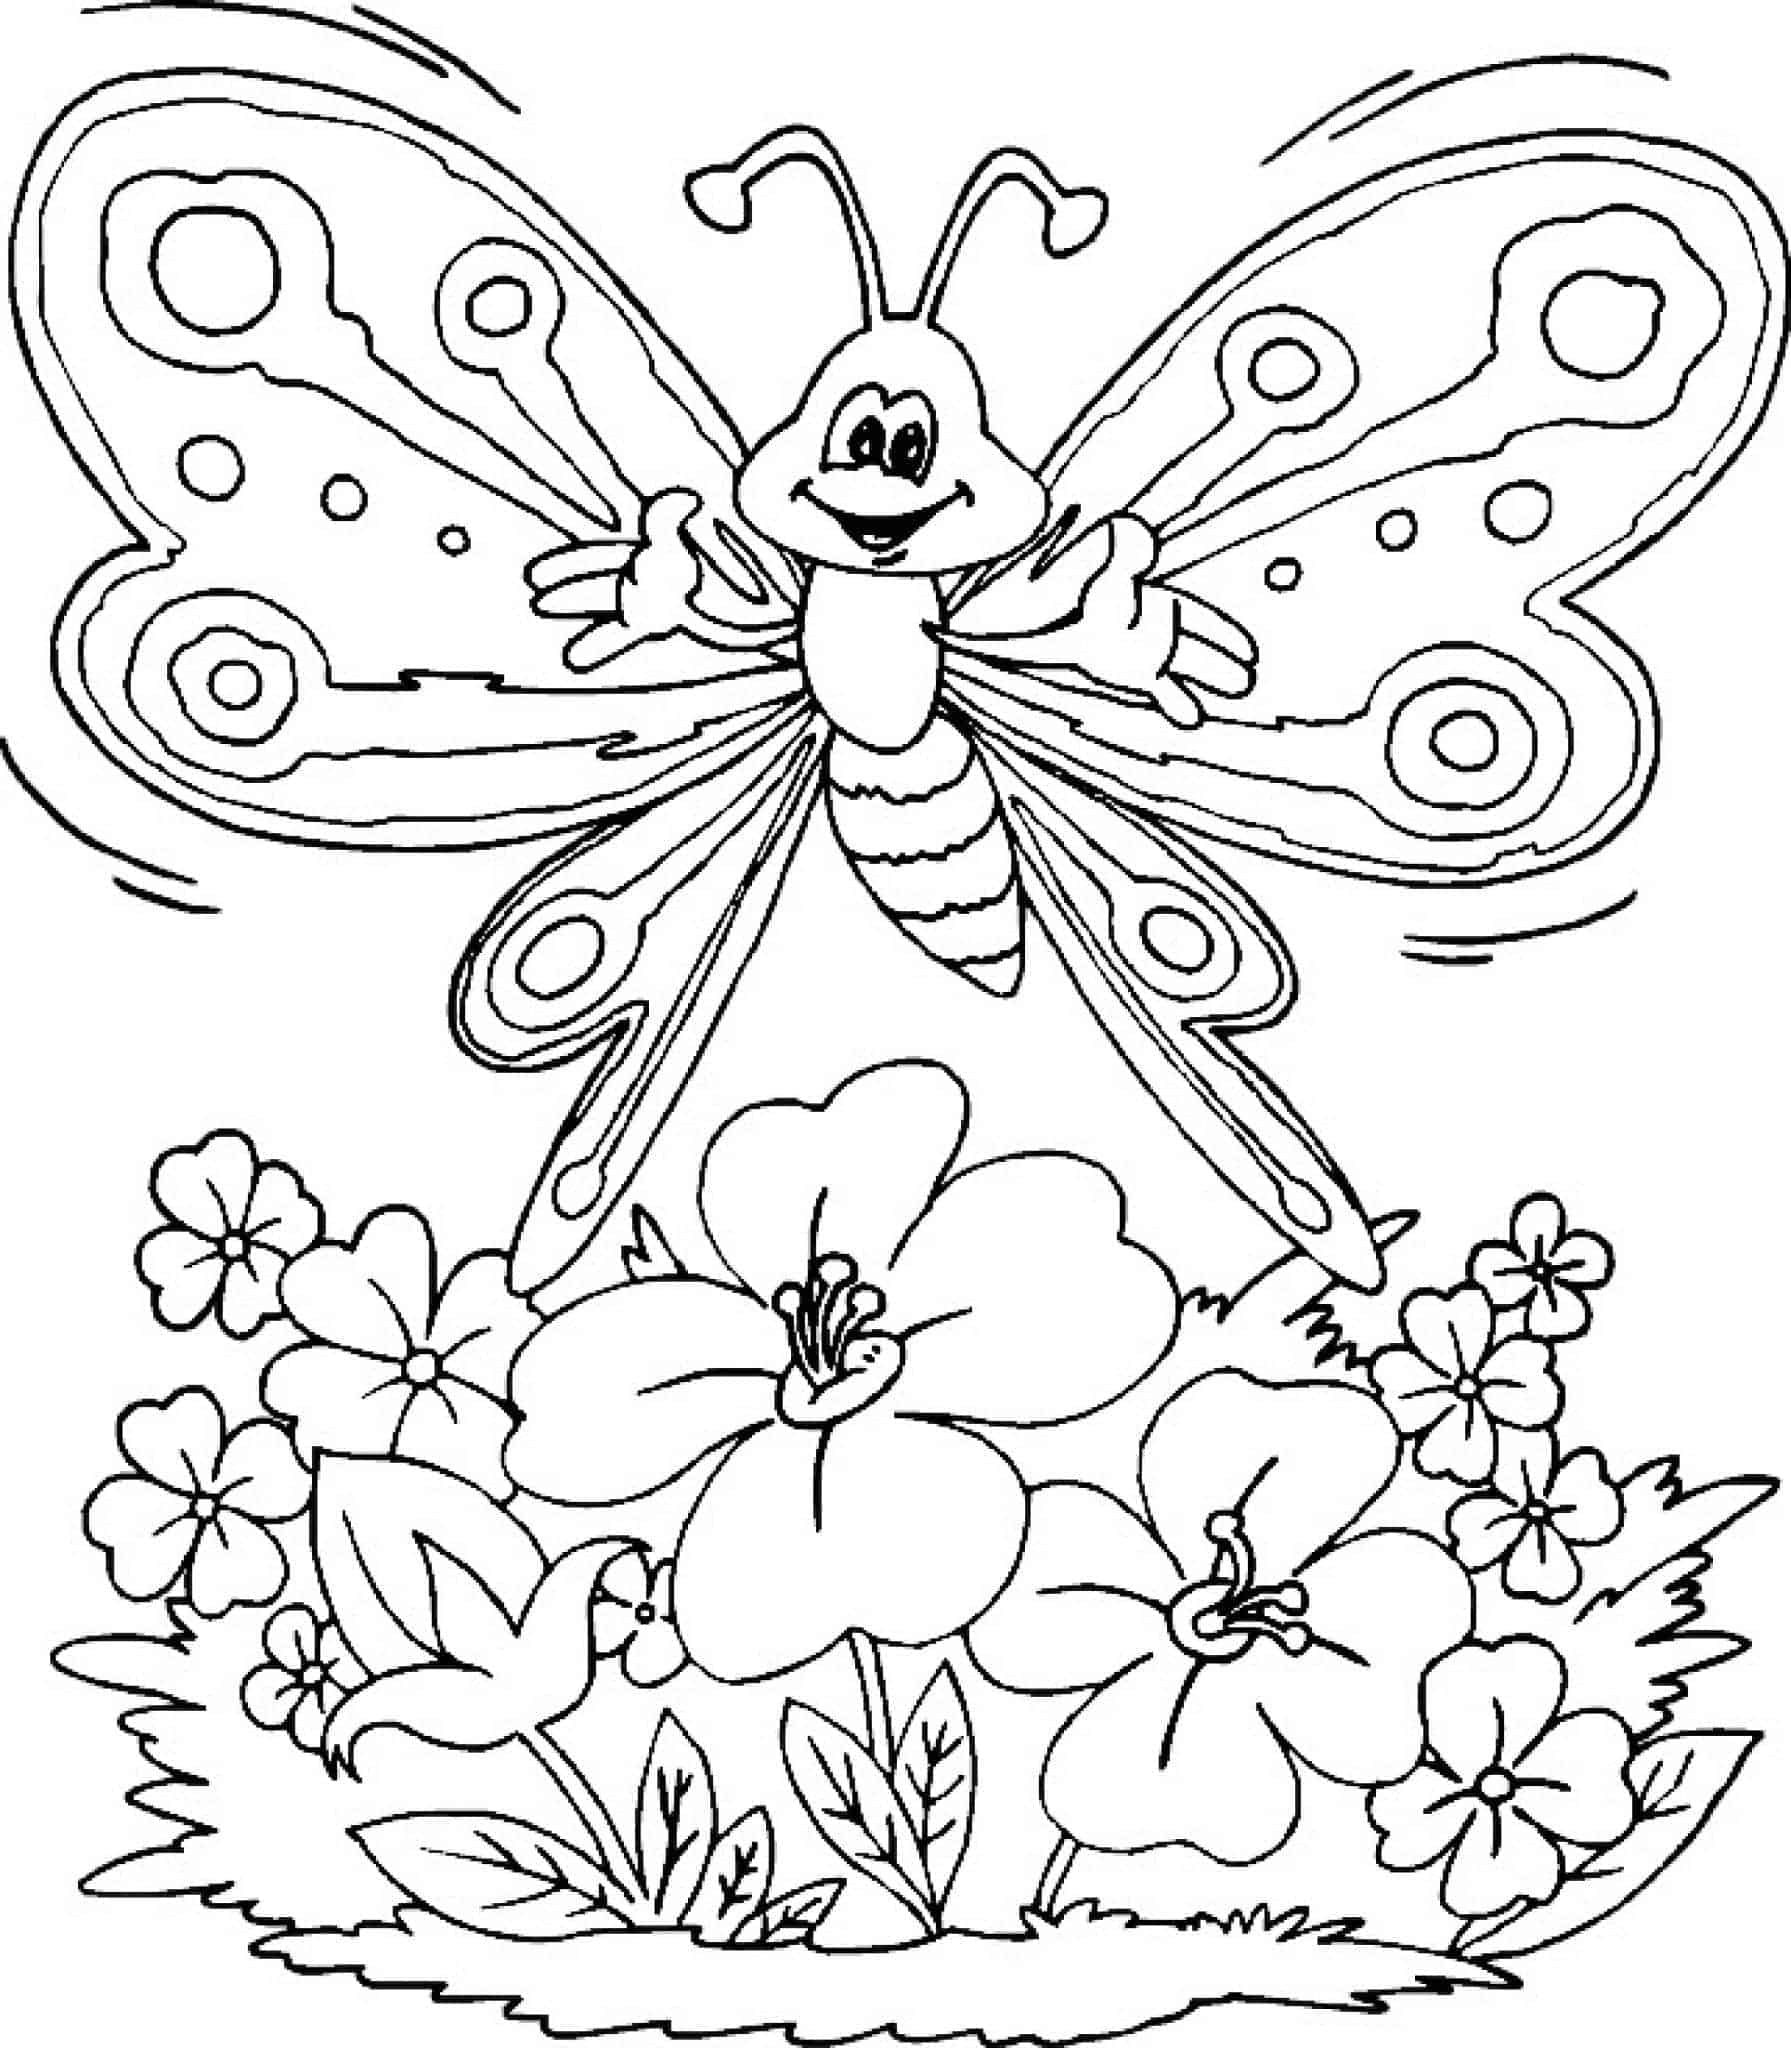 Flower And Butterfly Coloring Pages Butterfly Coloring Page Spring Coloring Pages Flower Coloring Pages